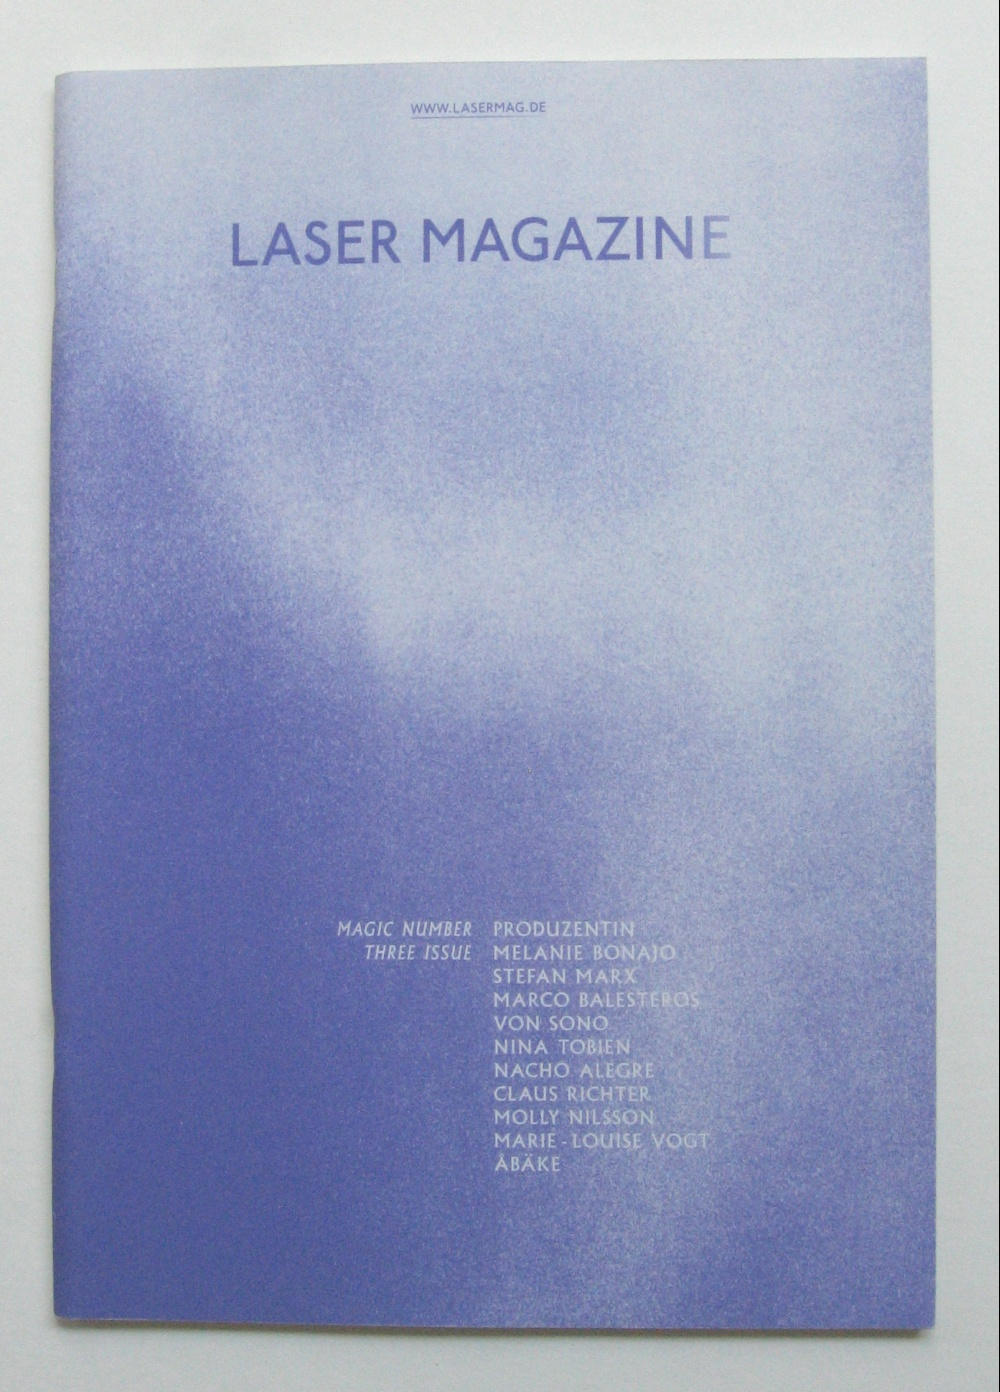 Laser Magazine, Magic Number Three Issue